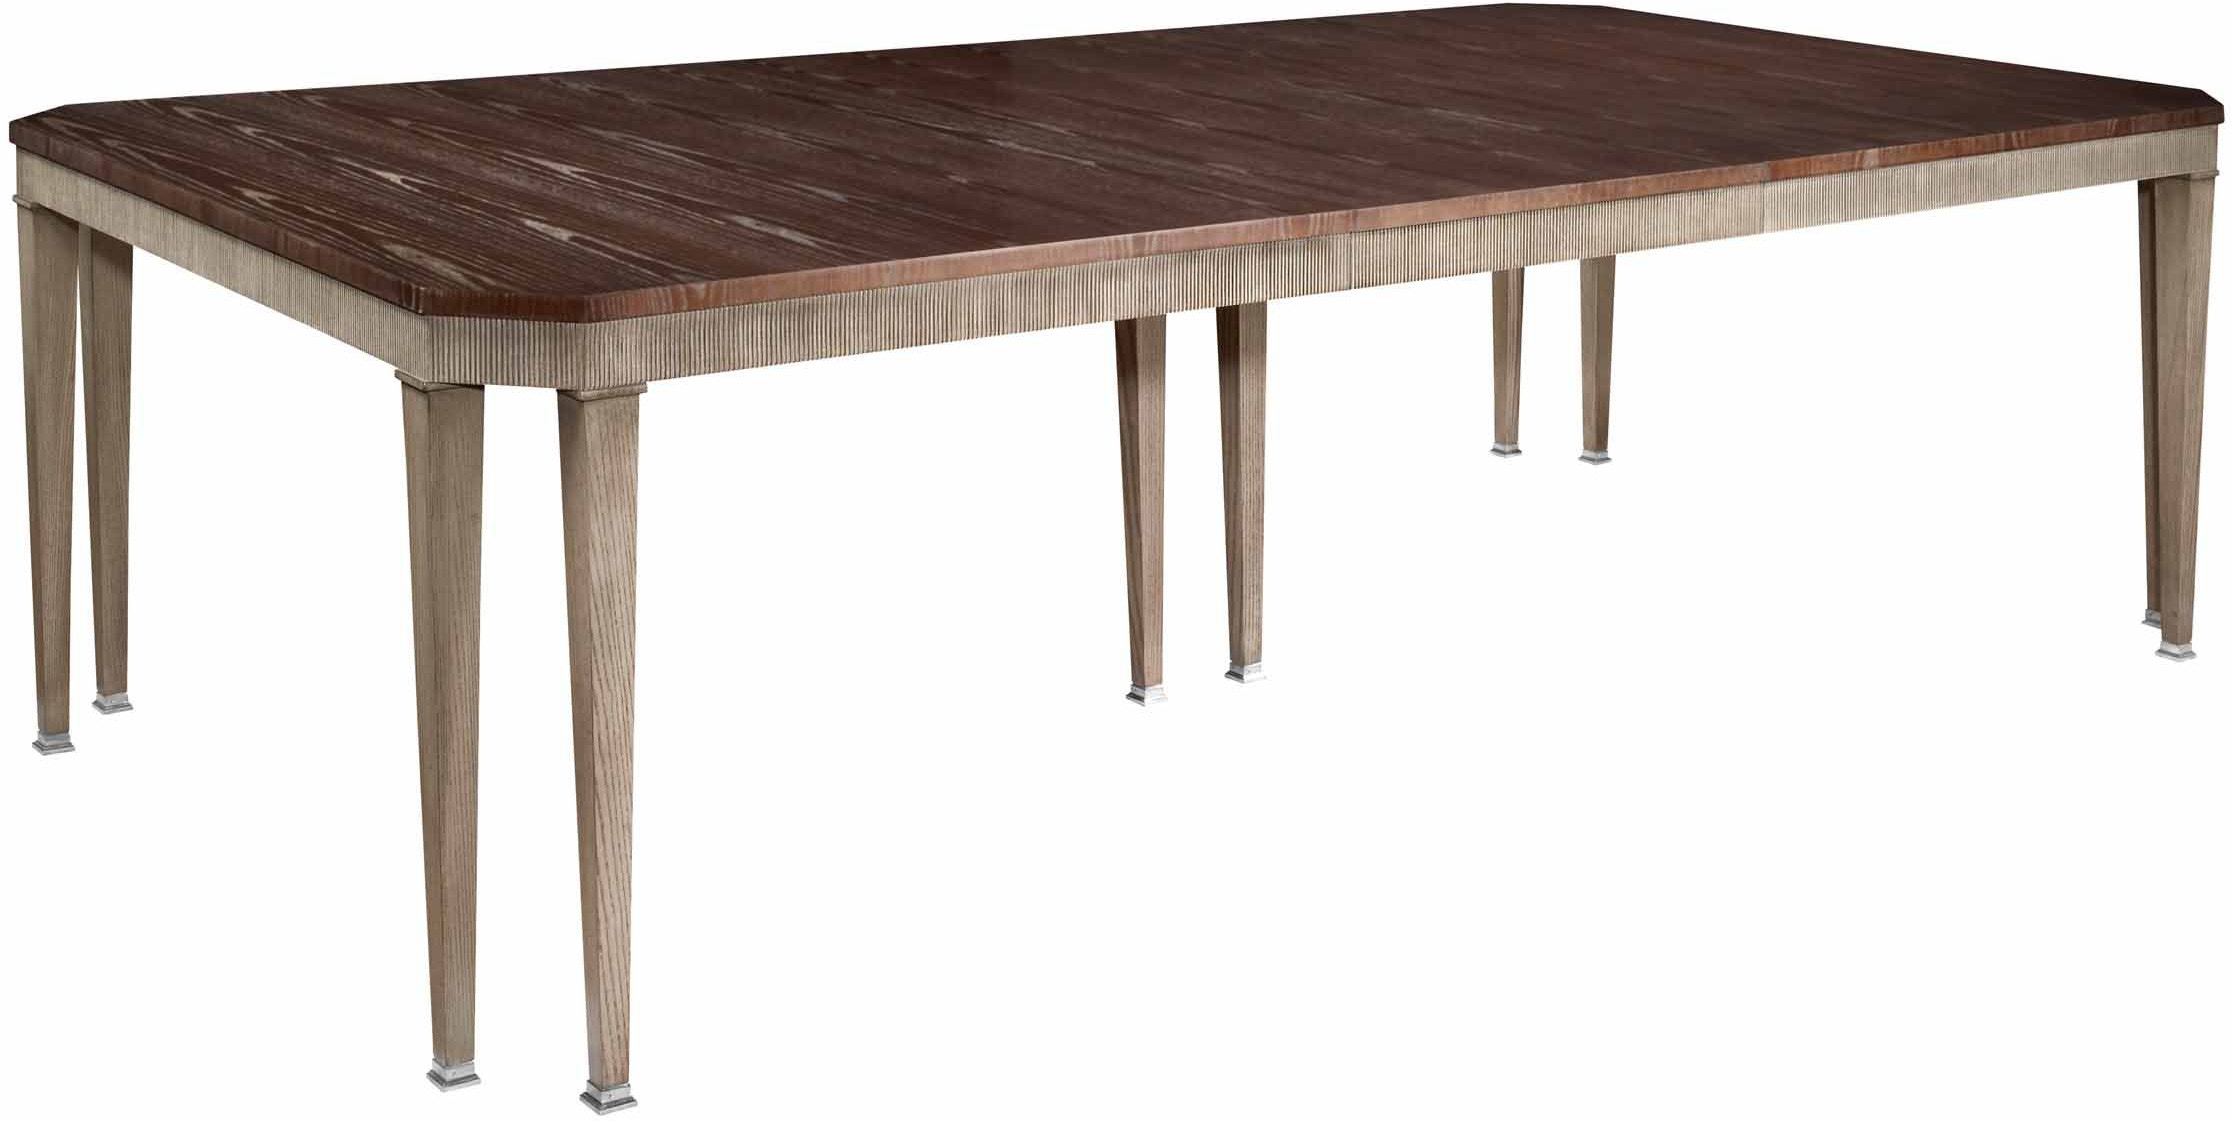 Hickory Chair Dining Room Artisan Chamfered Corner Dining Table - Ash  HKC14010 Walter E. Smithe Furniture + Design